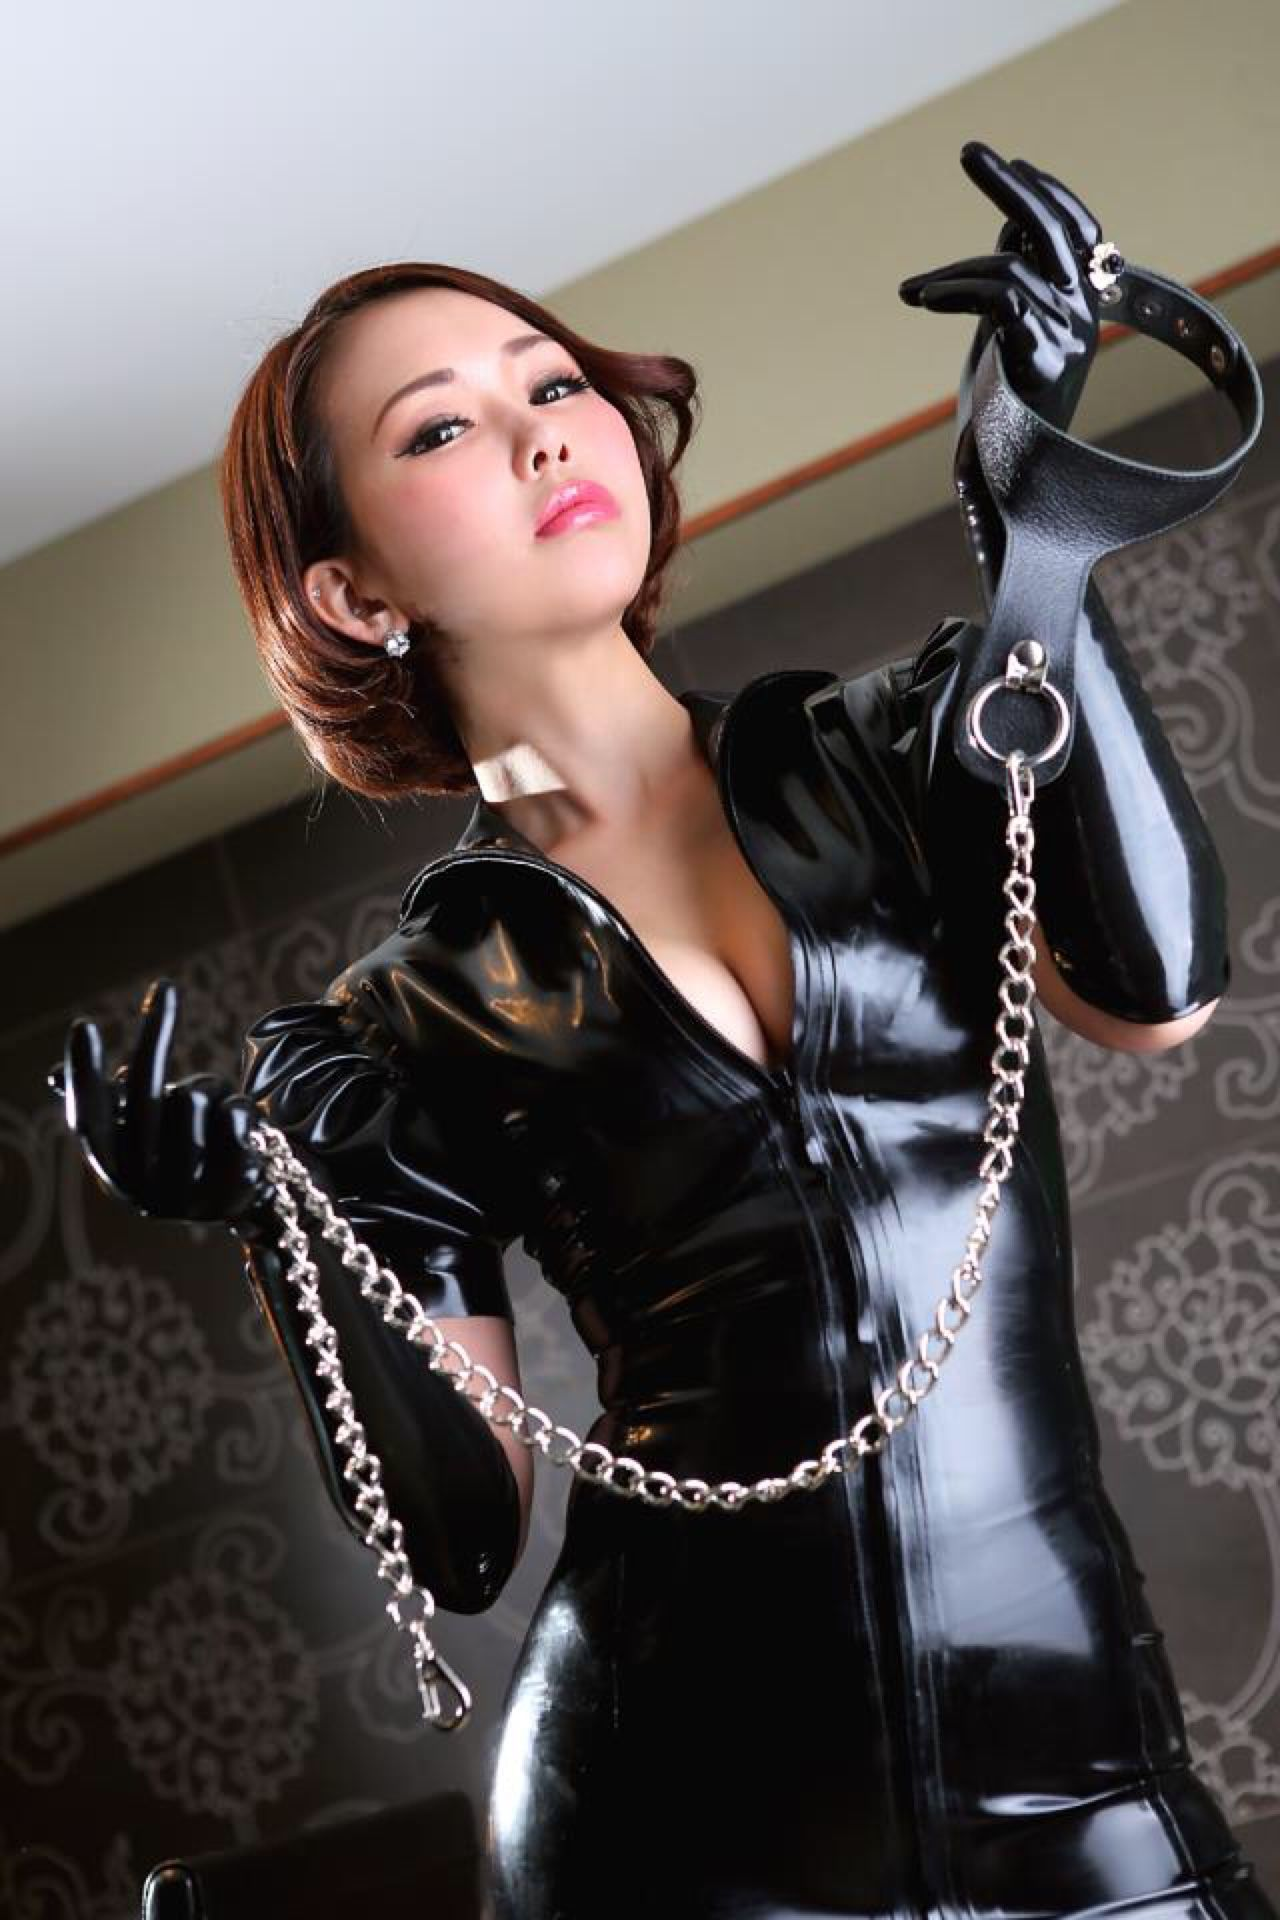 Pin on Latex & Leather